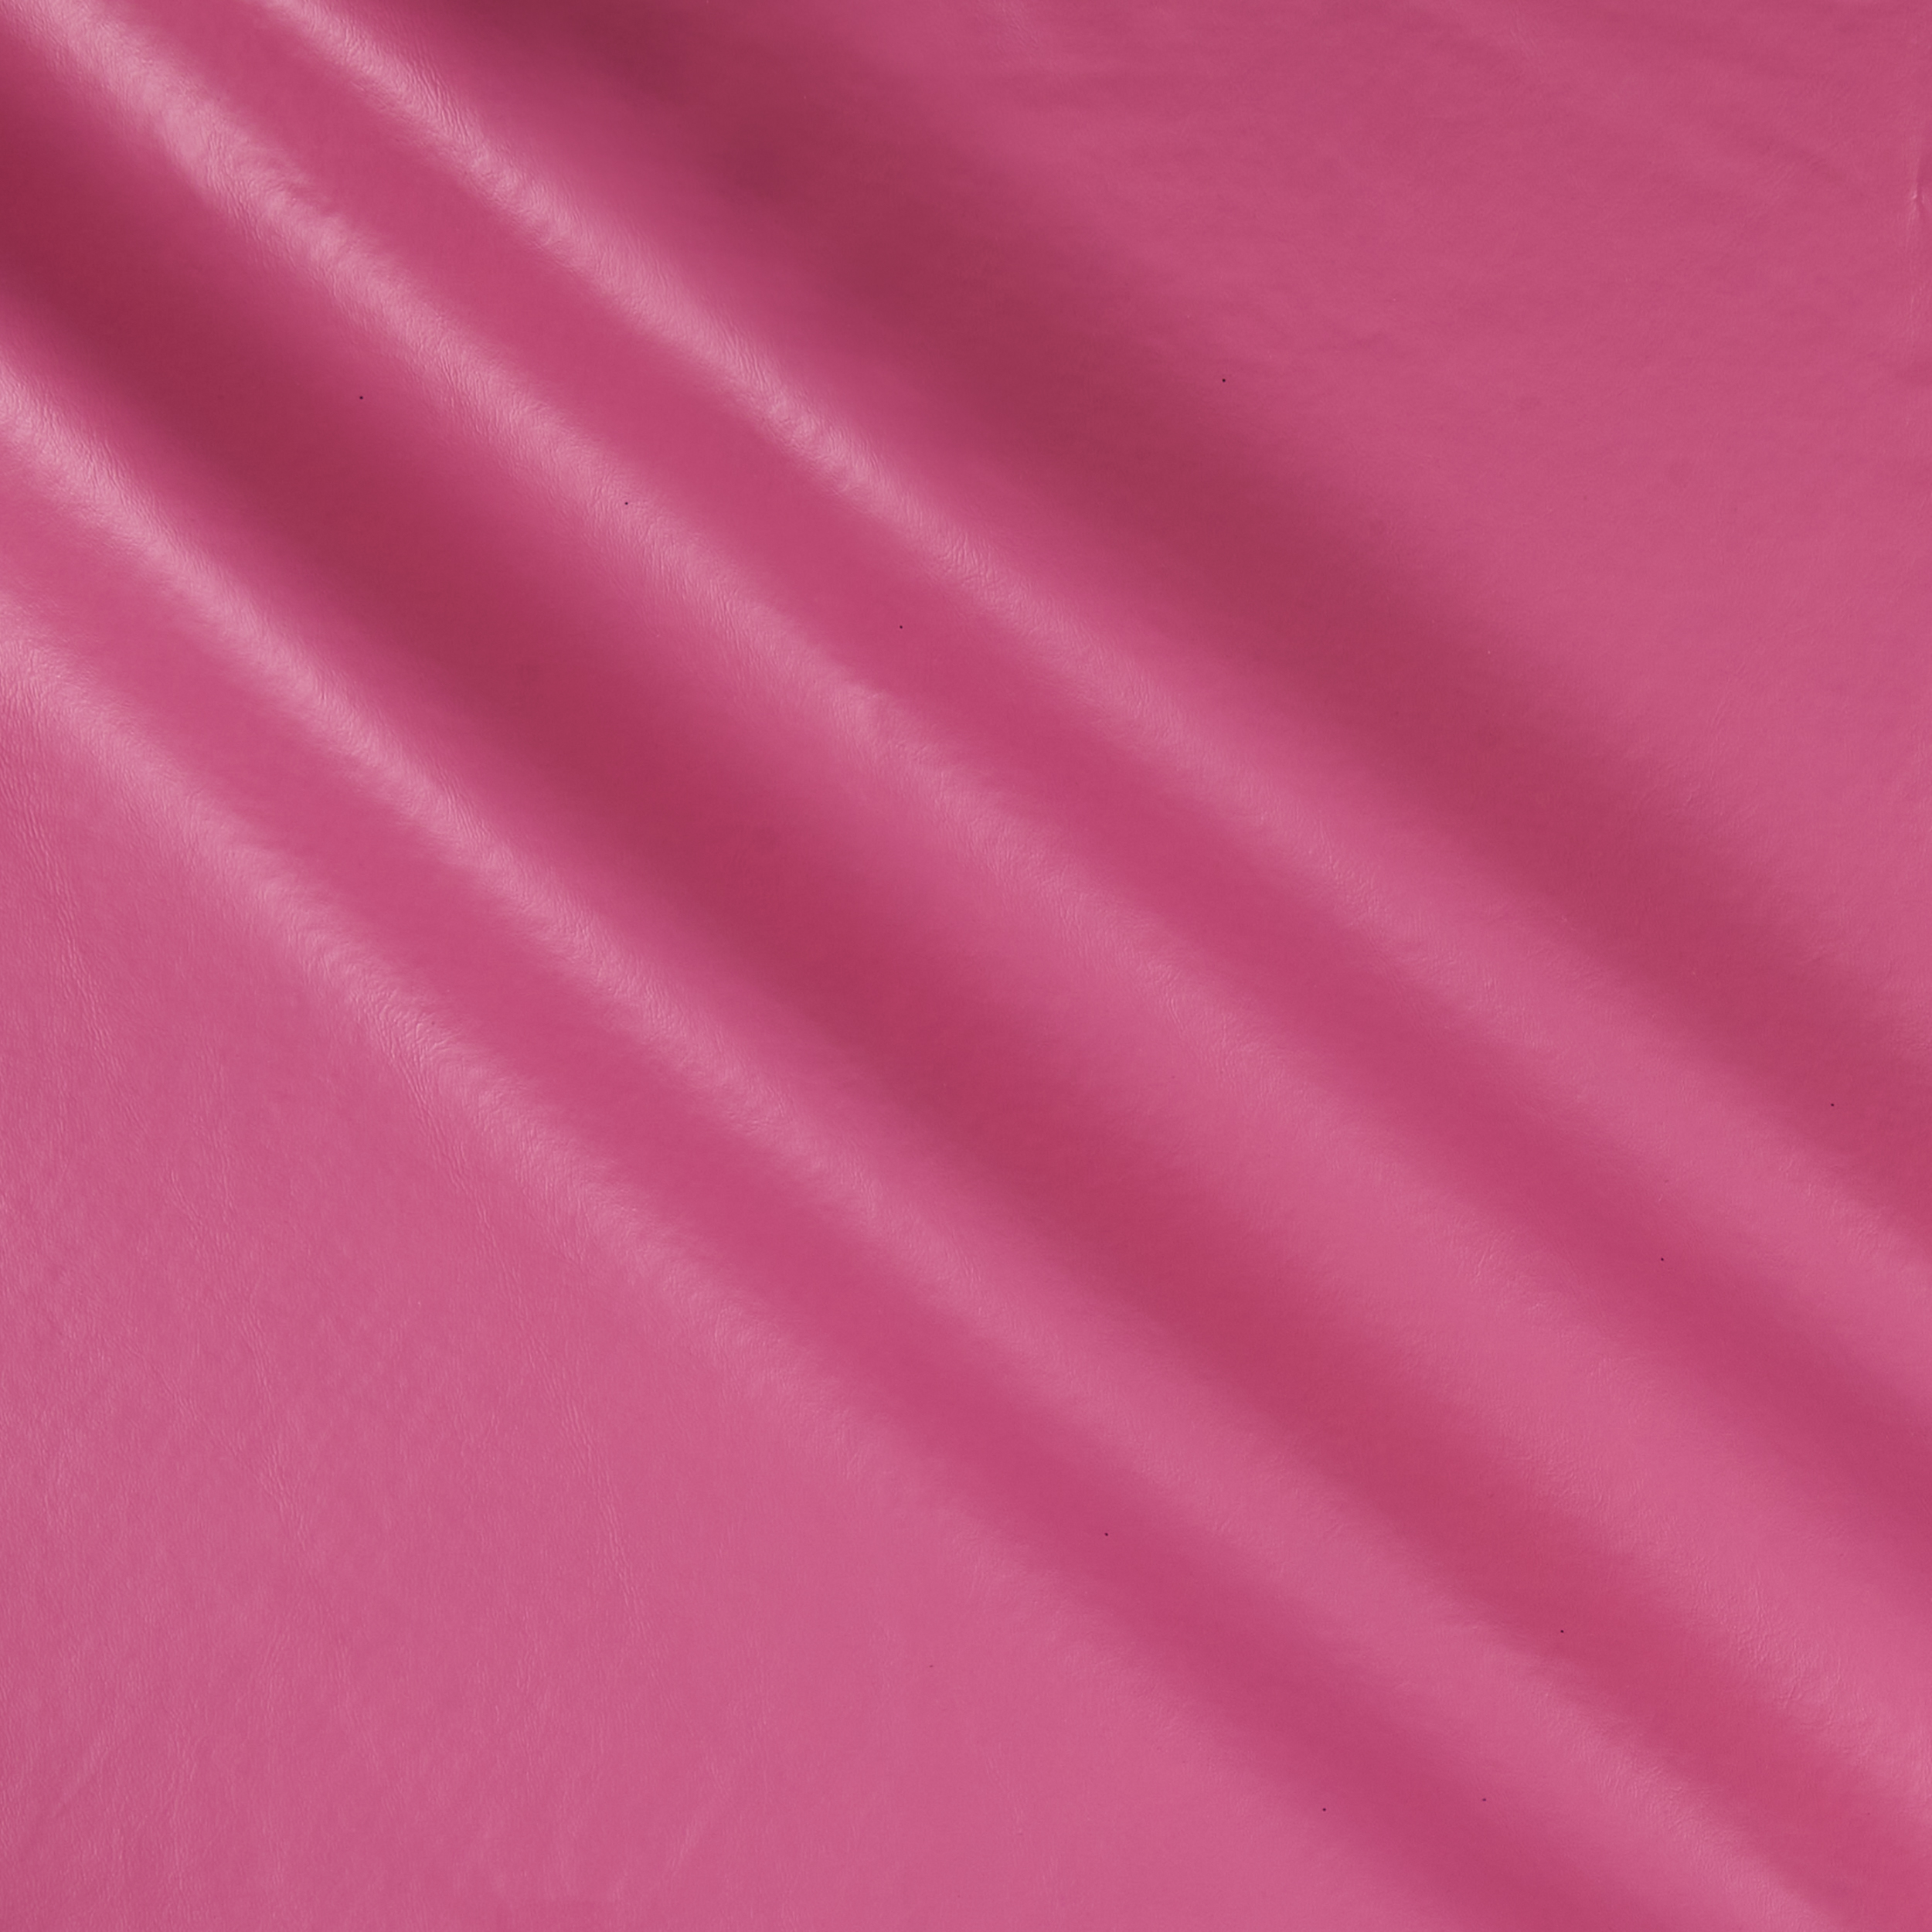 Galaxy Vinyl Hot Pink Fabric